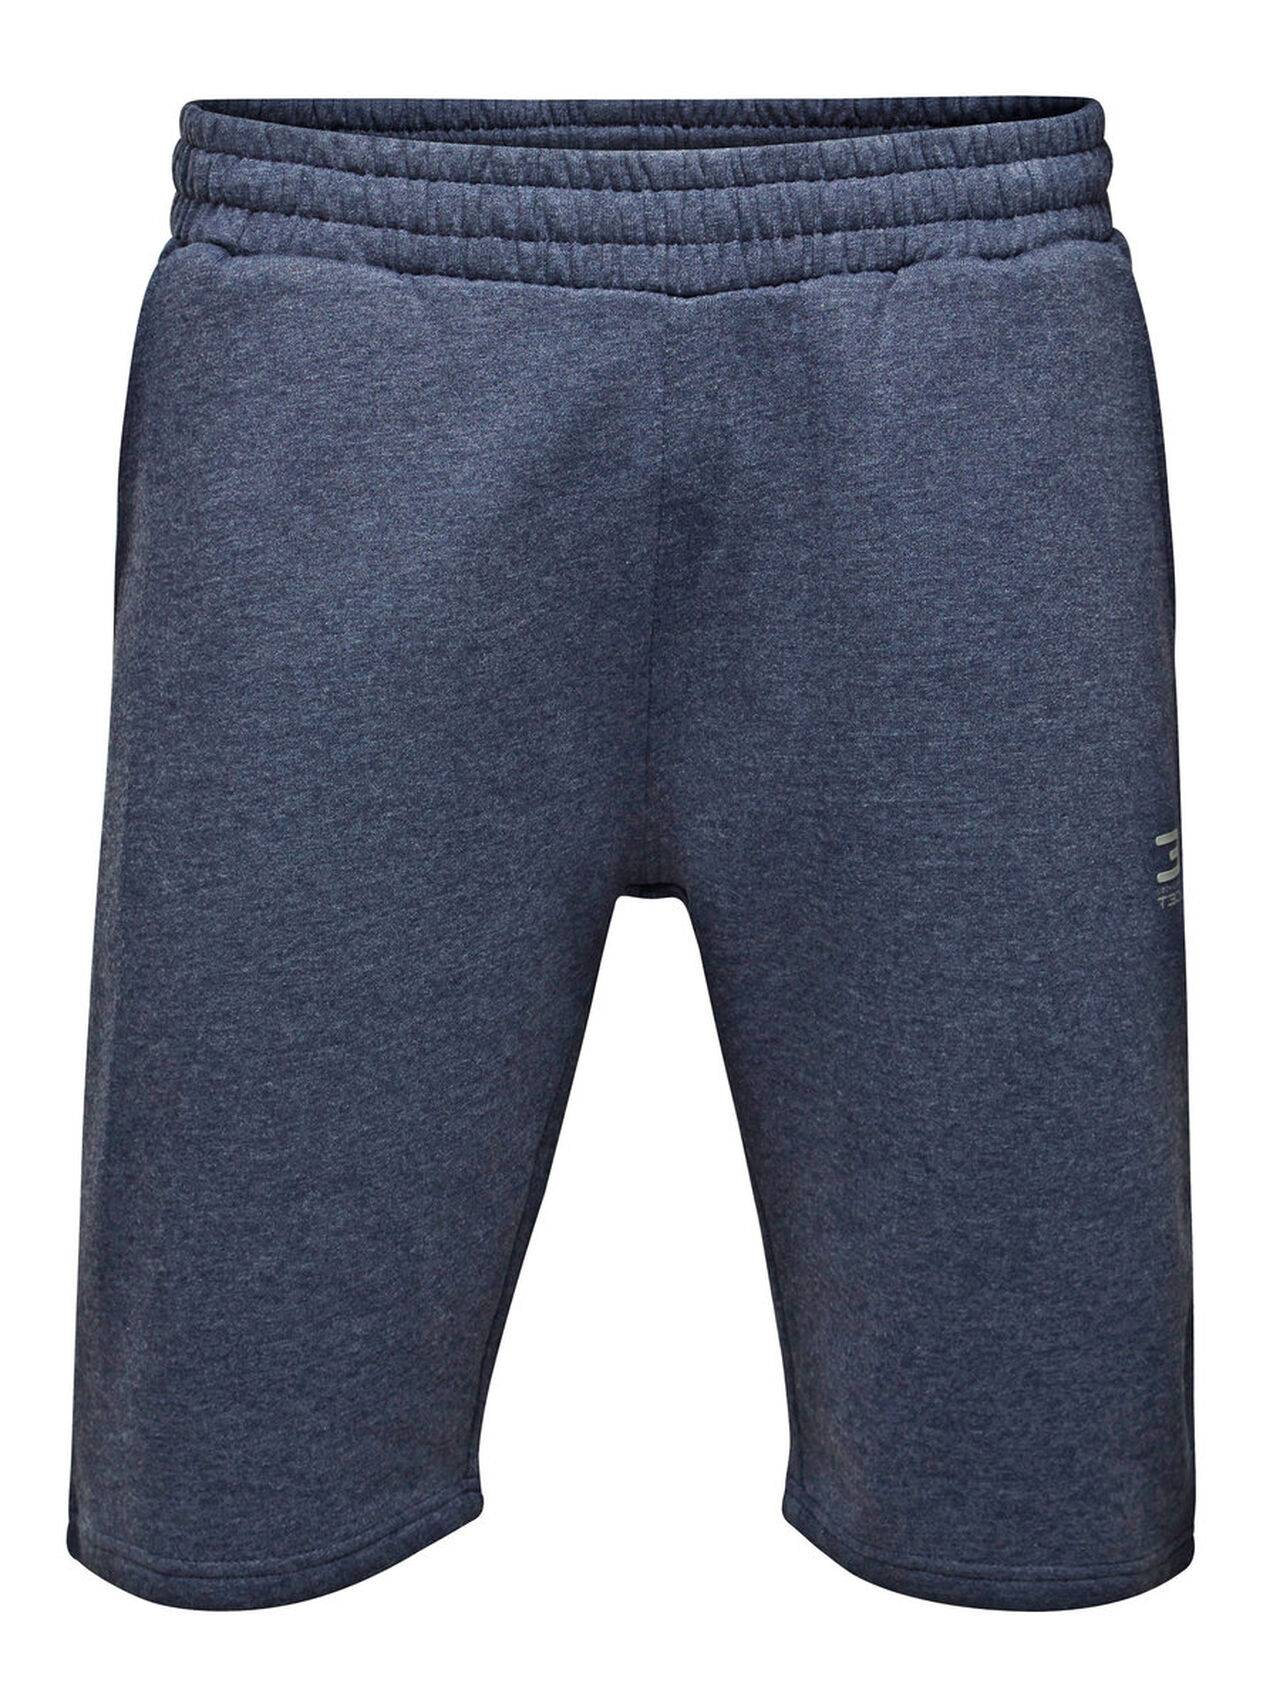 JACK & JONES Sports Sweat Shorts Men Blue NavyBlazer